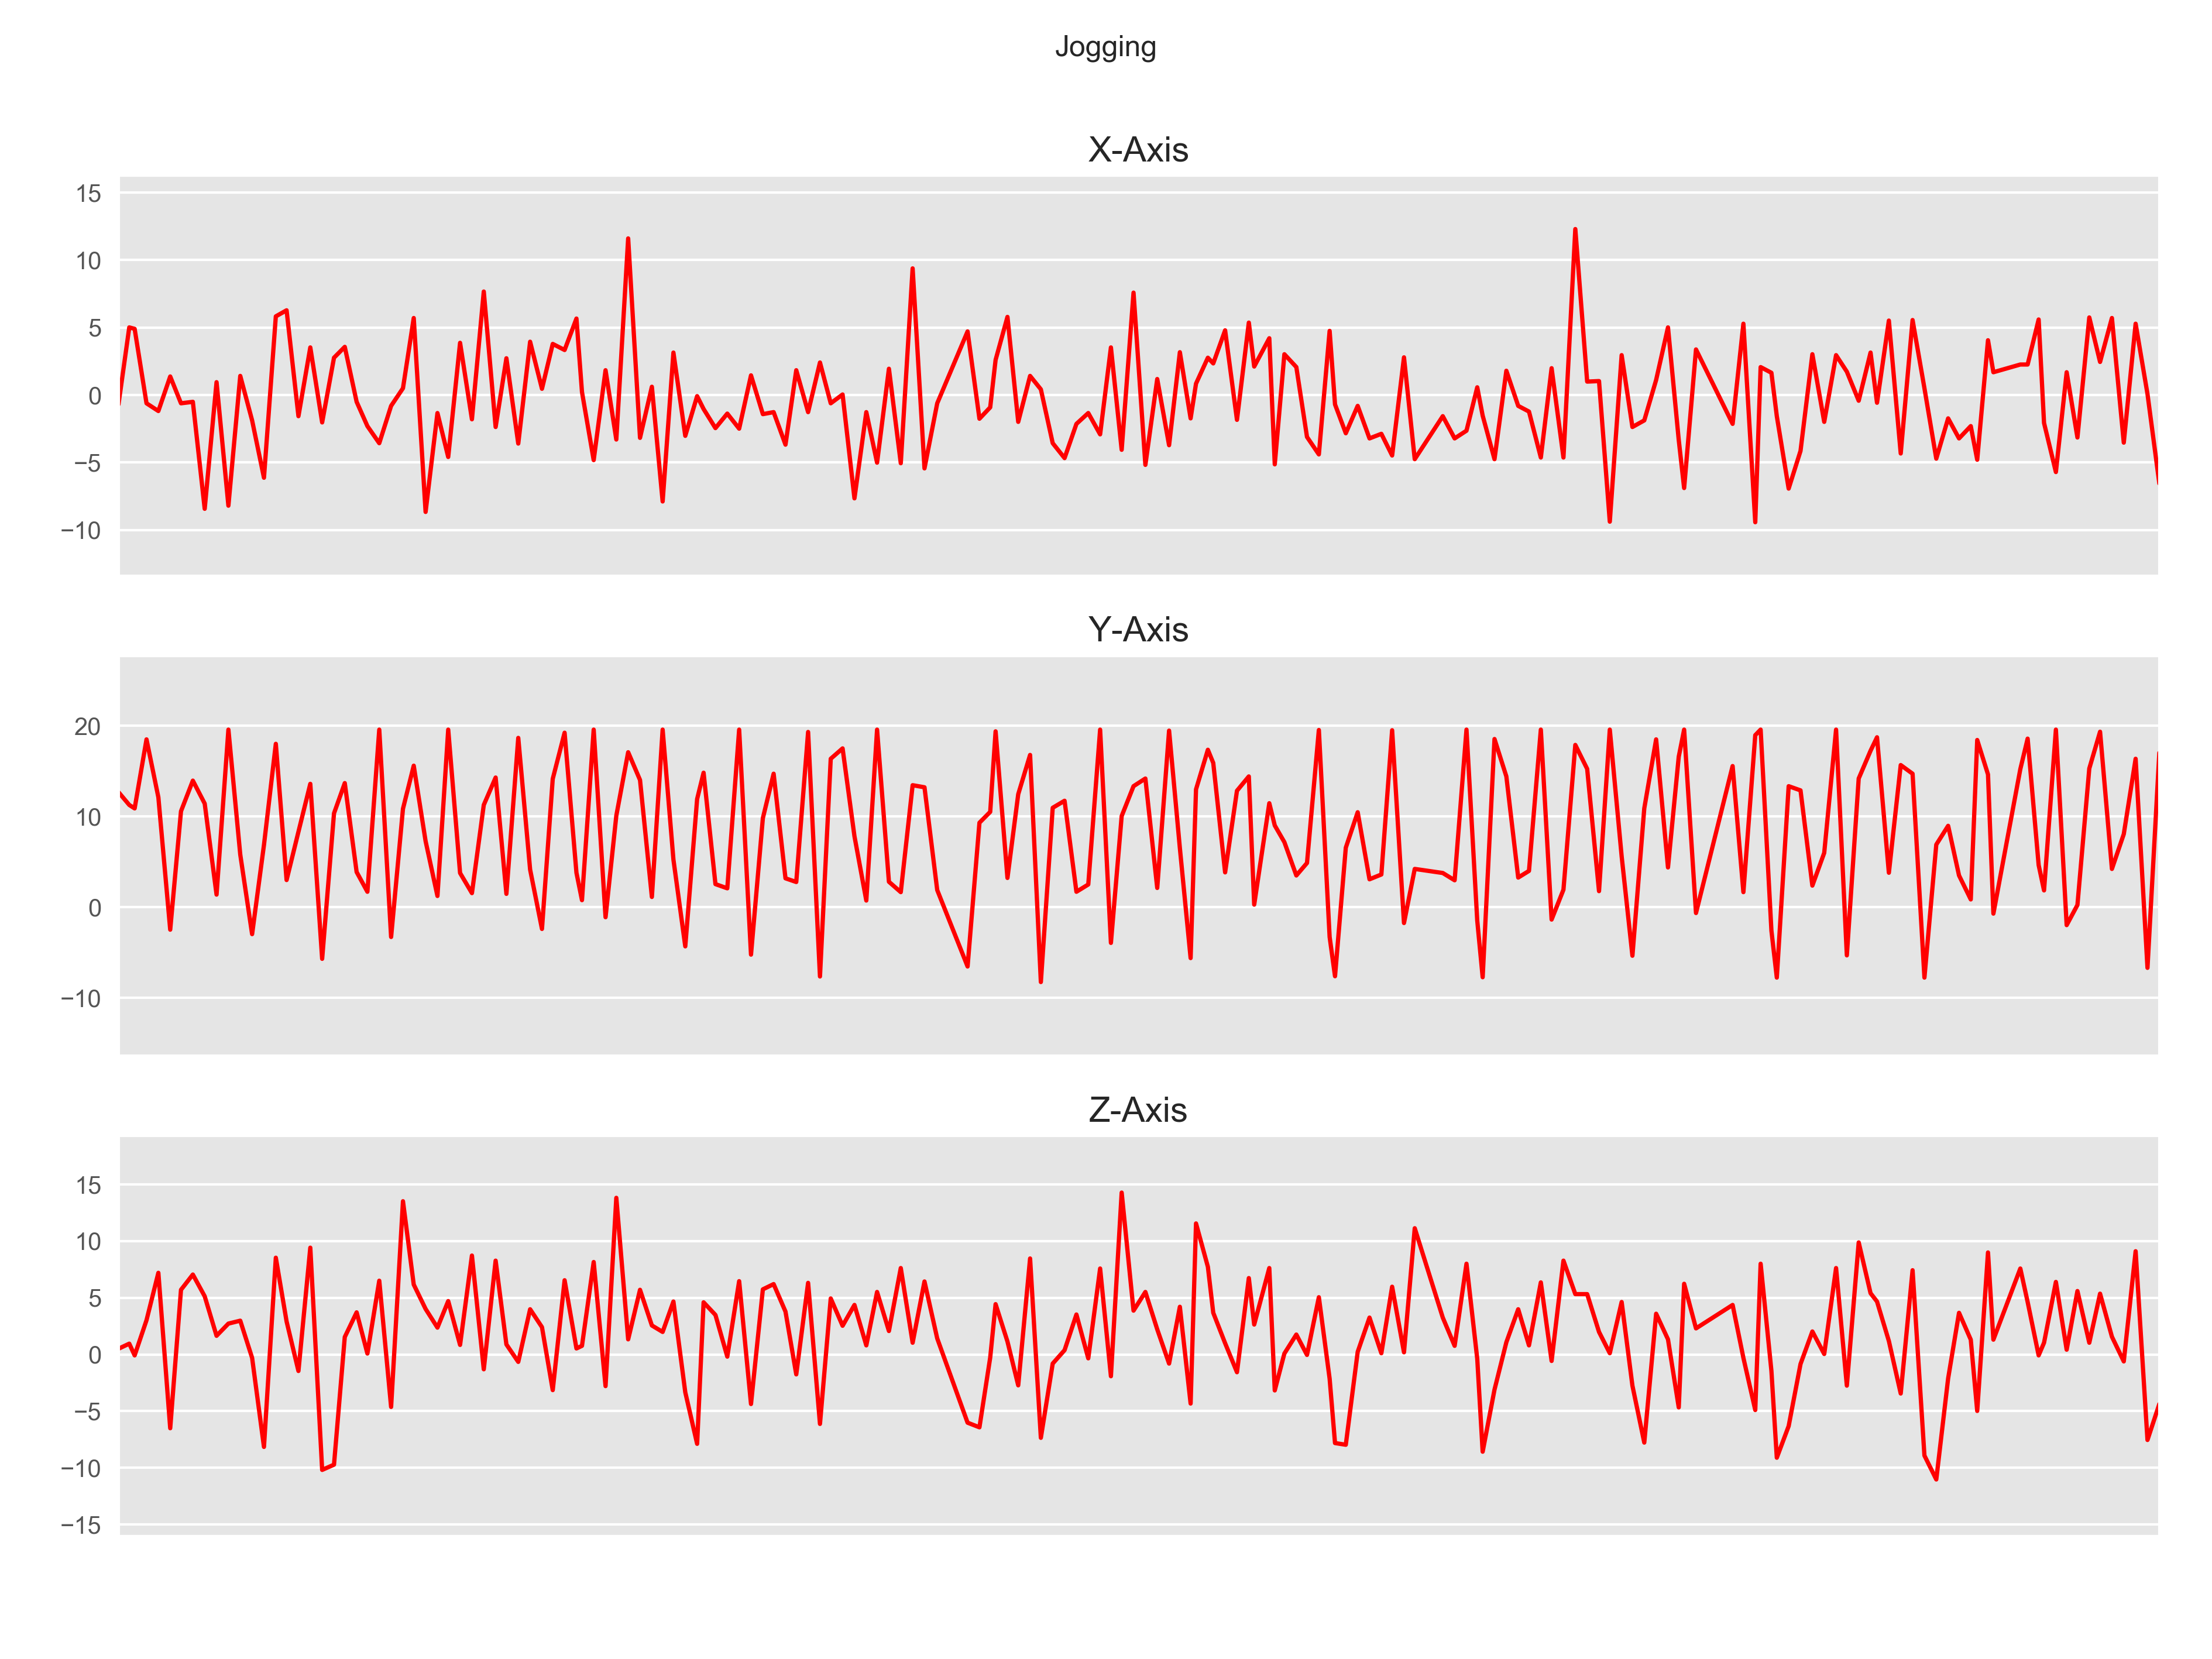 Human Activity Recognition (HAR) Tutorial with Keras and